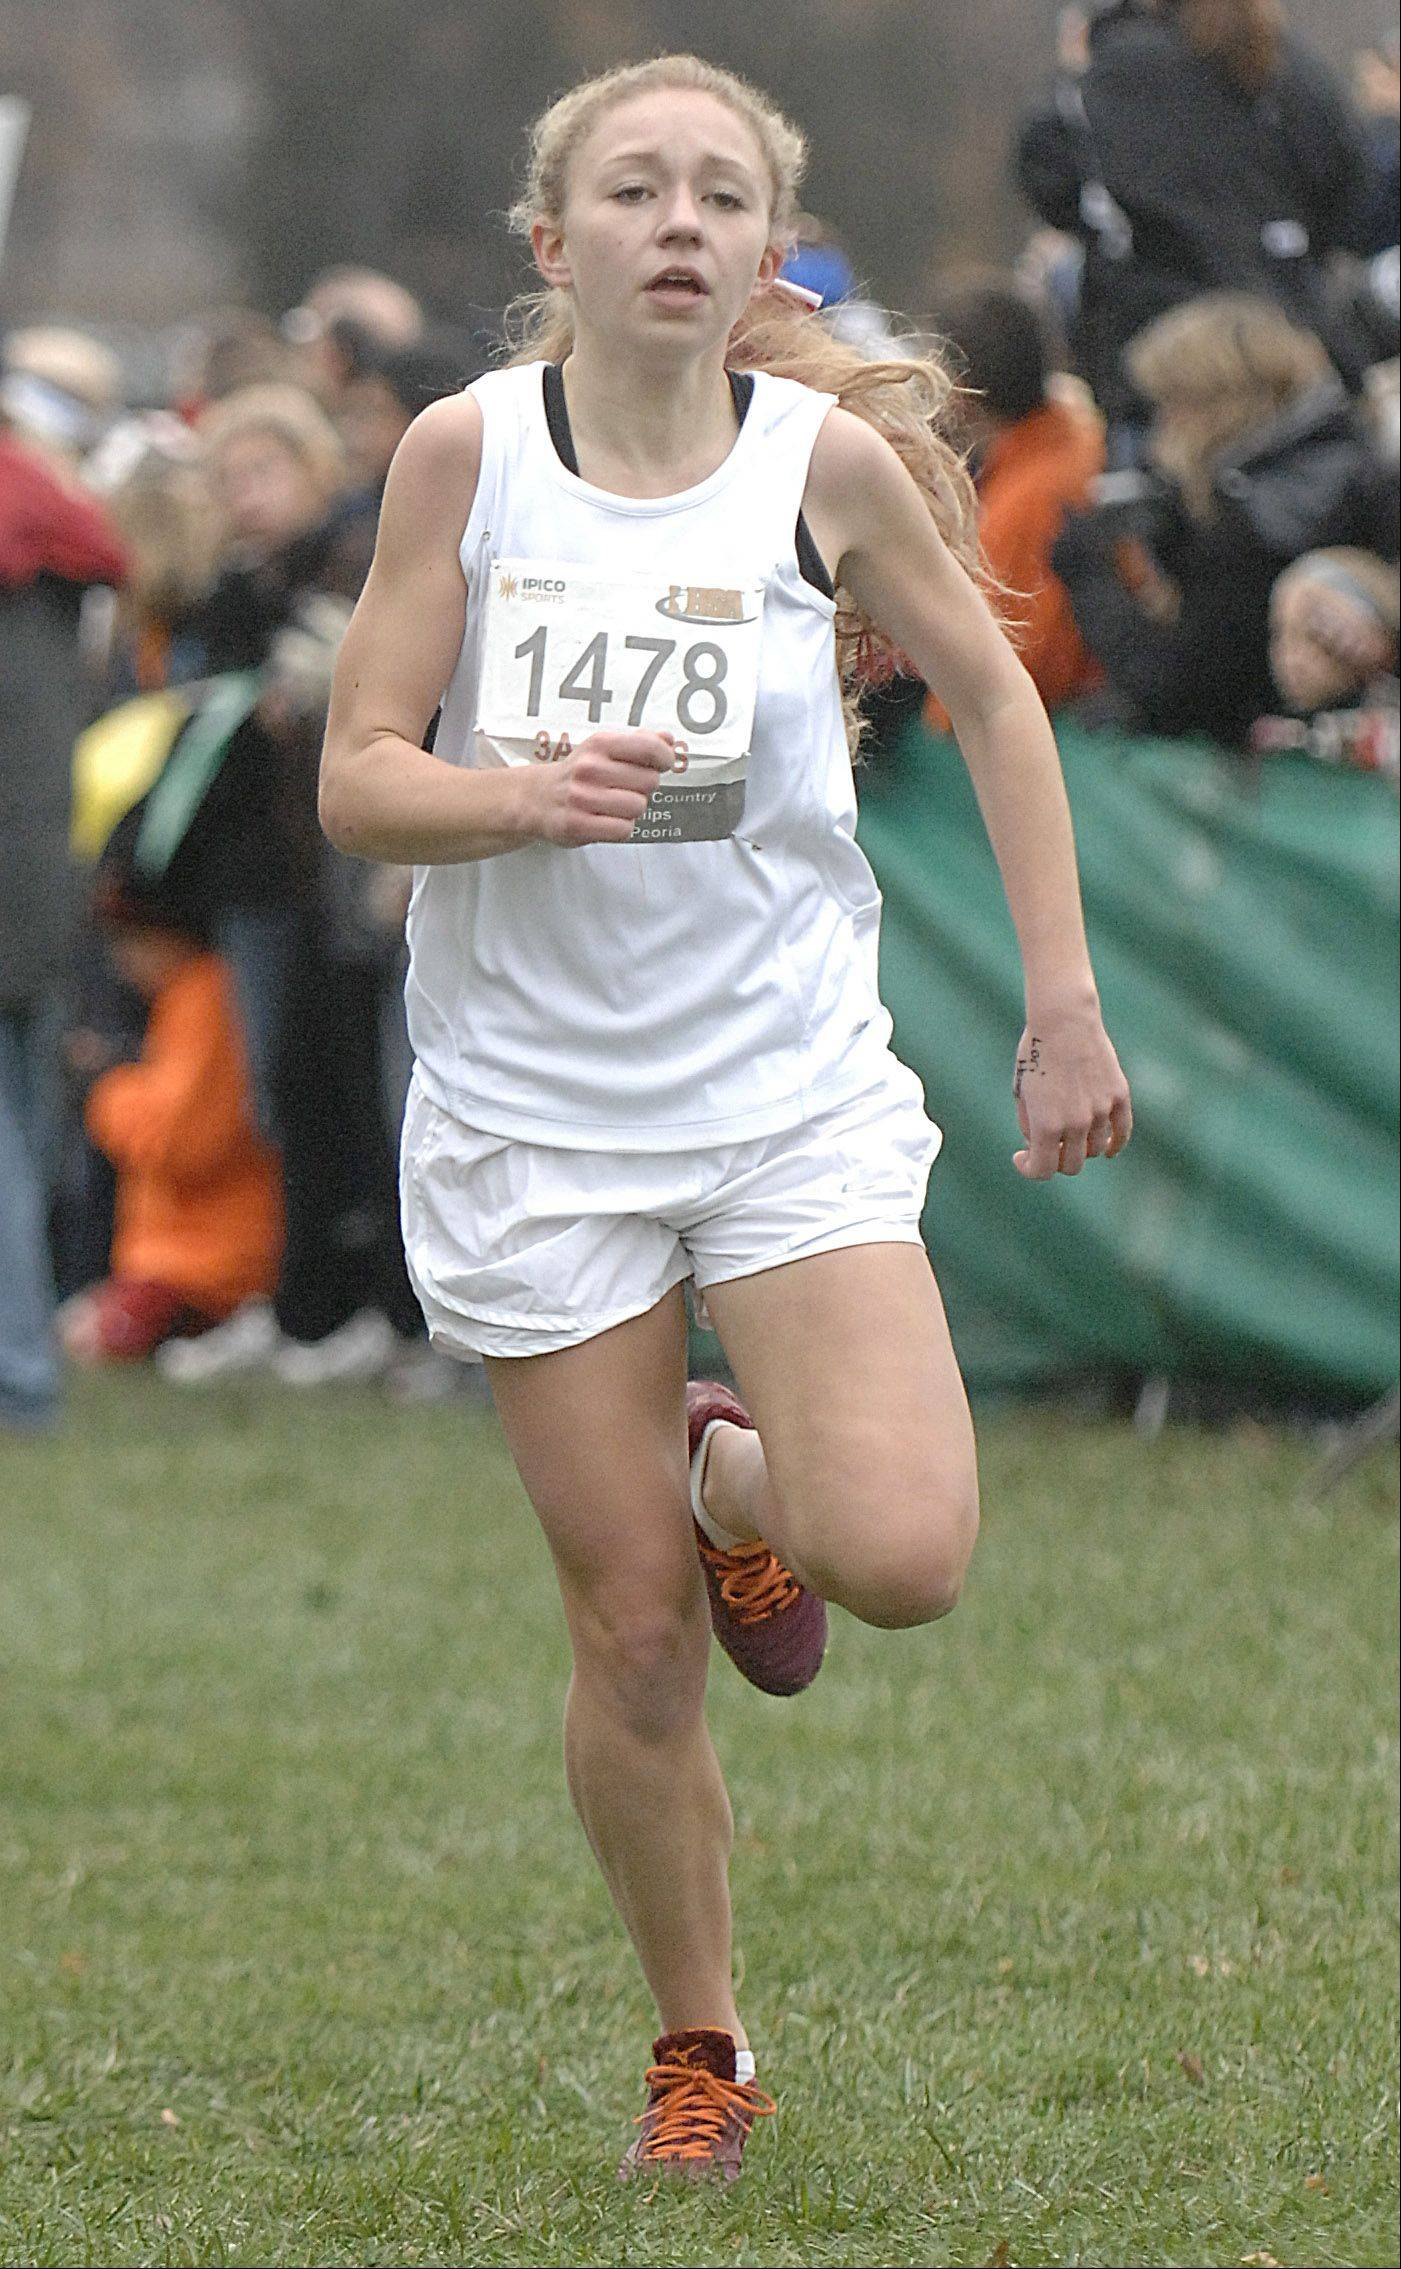 Barrington's Caroline Reynolds approaches the finish line in the state cross country 3A final in Peoria to take 30th place on Saturday, November 3.